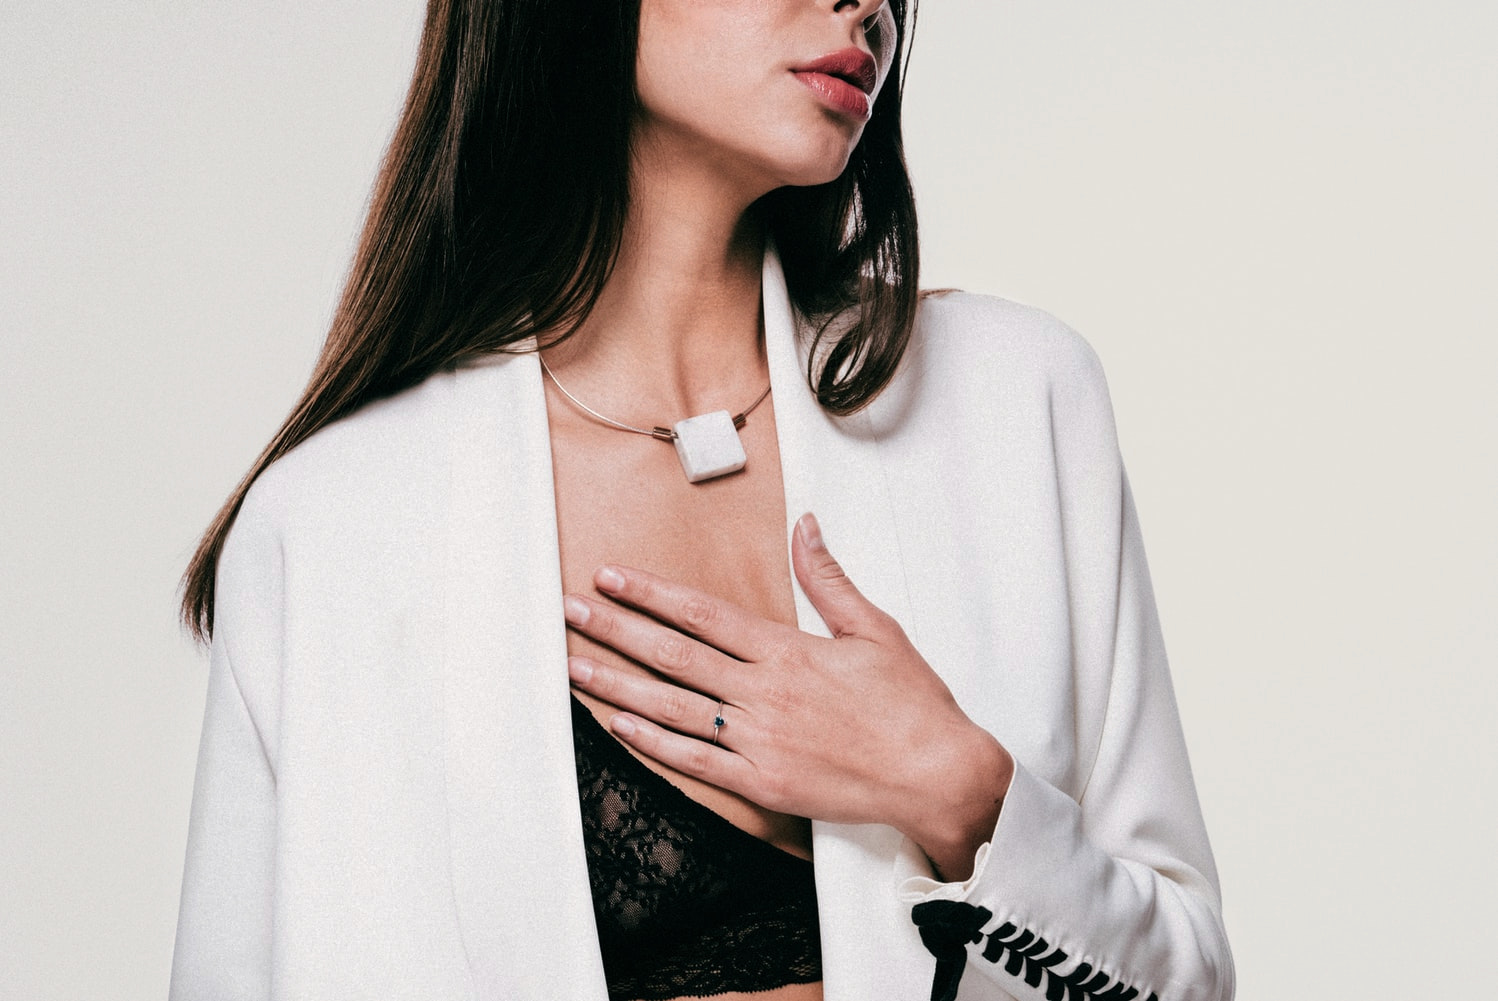 THREE BEST SUMMER JEWELRY TRENDS: SHELLS, OVERSIZED ACCENTS AND LAYERS